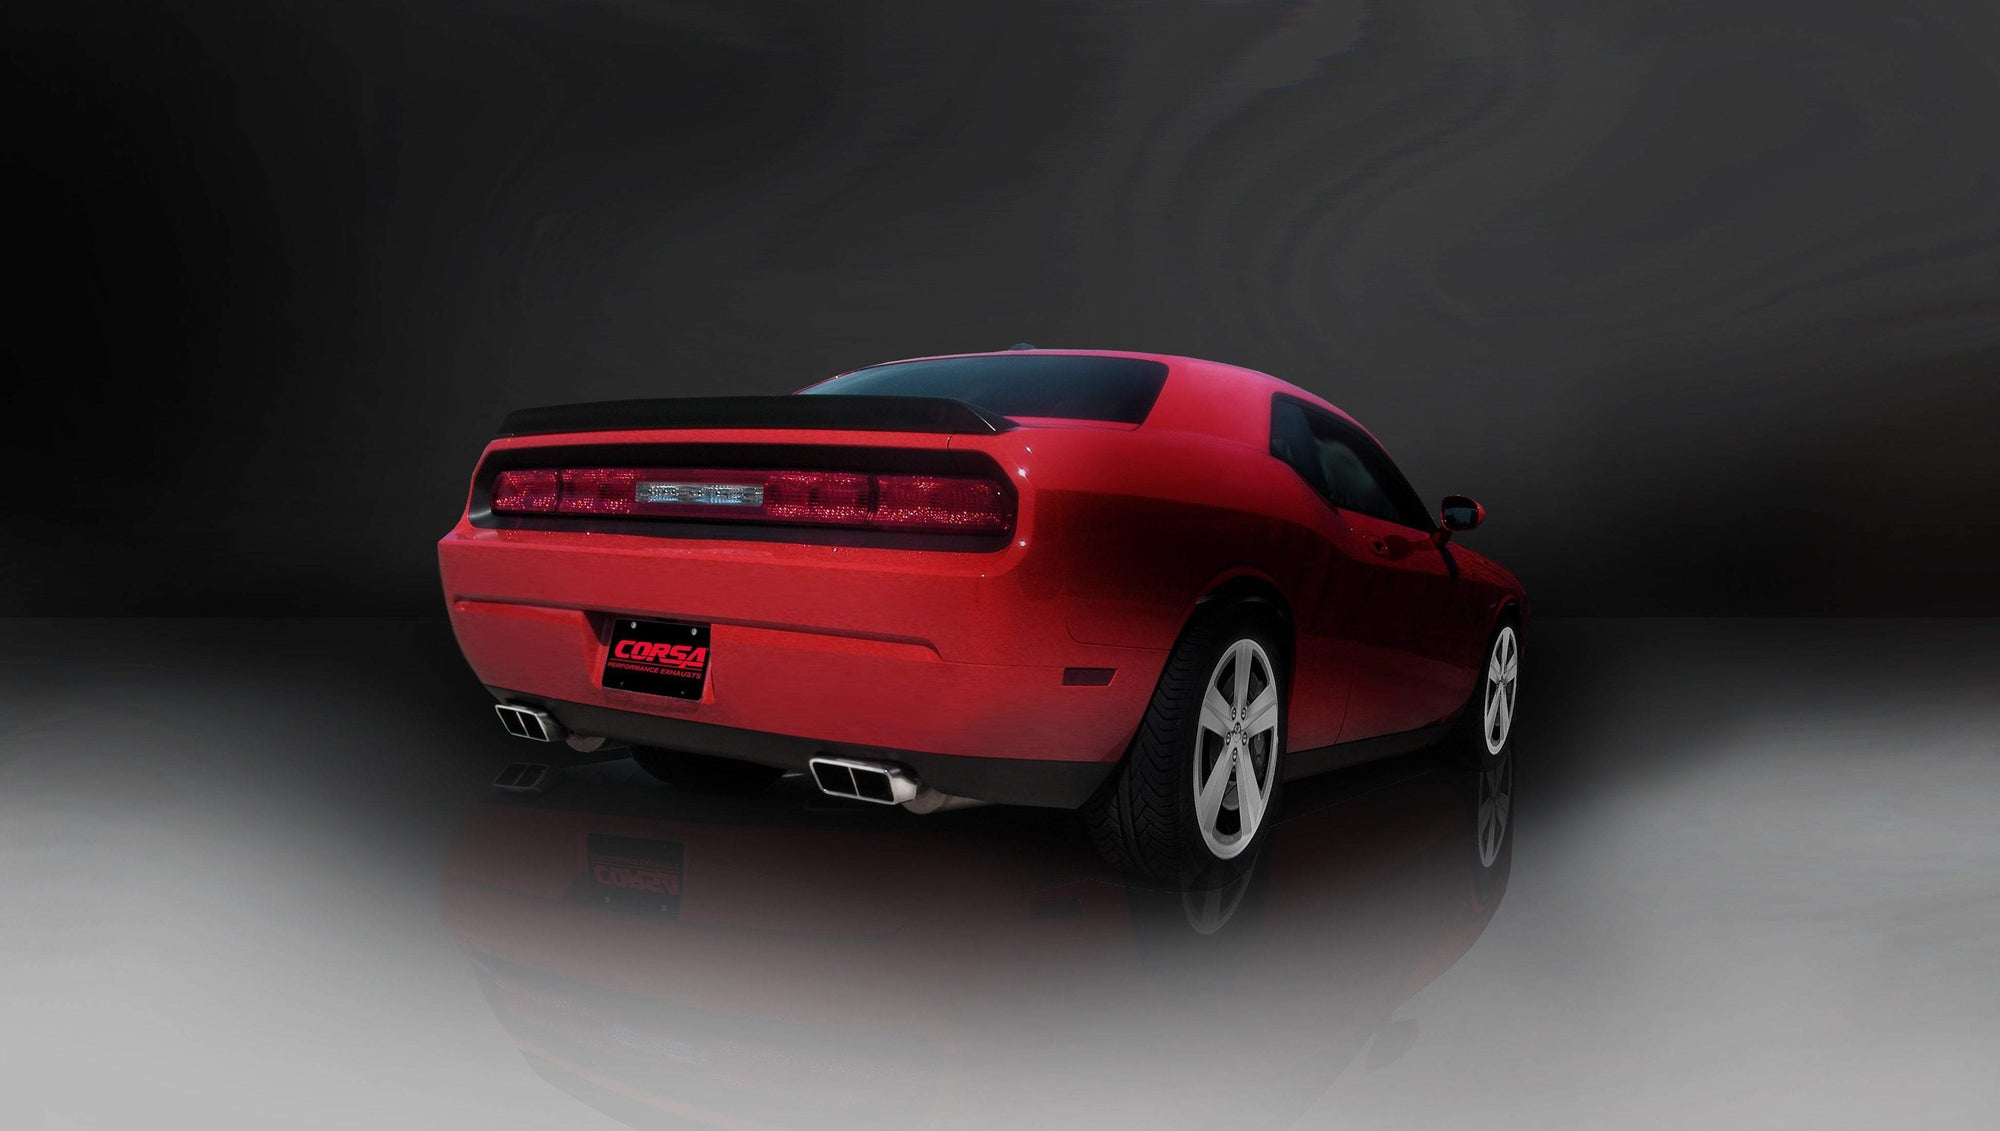 "CORSA PERFORMANCE Cat-Back Exhaust Polished / Xtreme / Dual Rear - GTX 2009-2010 Dodge Challenger R/T 5.7L V8, 2.5"" Dual Rear Exit Cat-Back Exhaust System with GTX Tips (14436) Xtreme Sound Level"